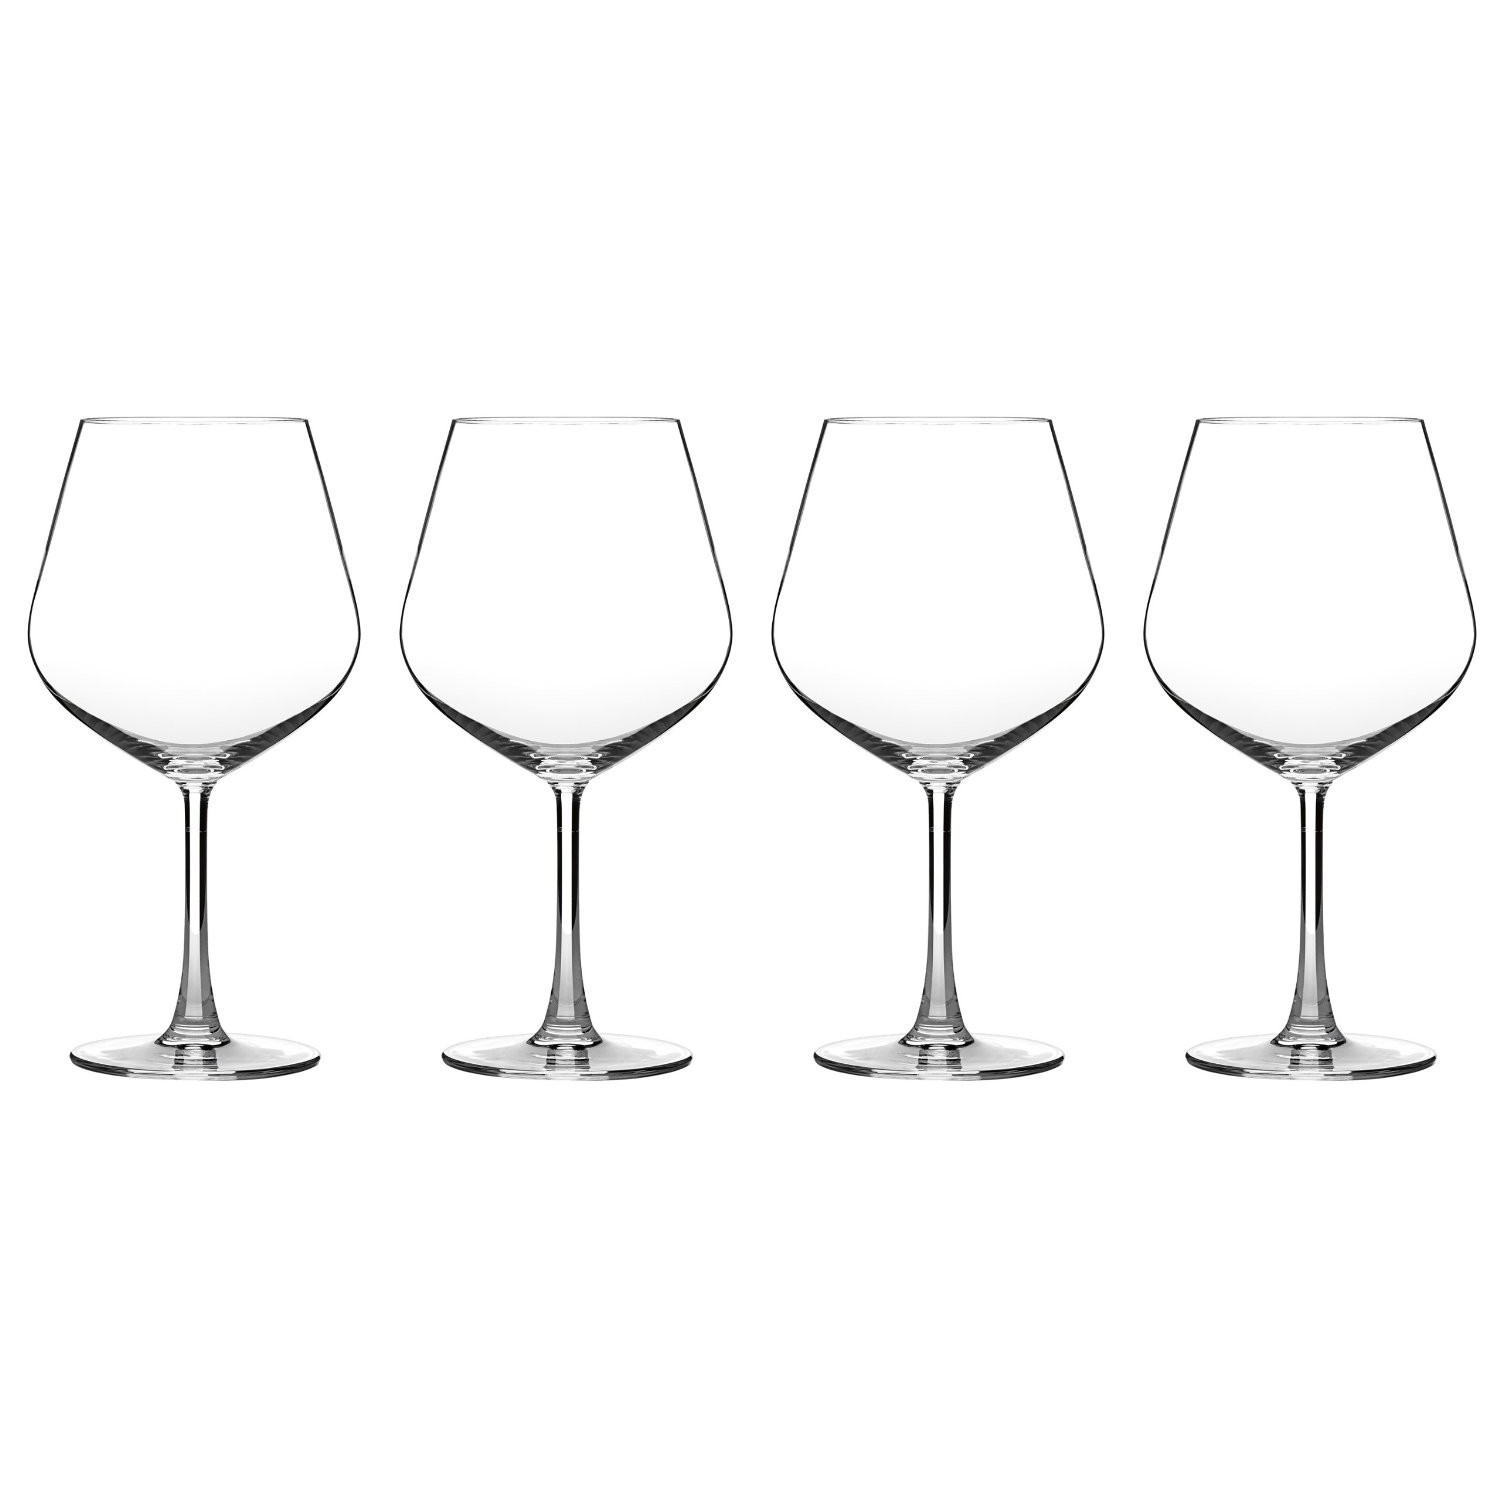 Schott Cristal | Schott Zwiesel Wine Glasses | Riedel Wine Glasses Reviews